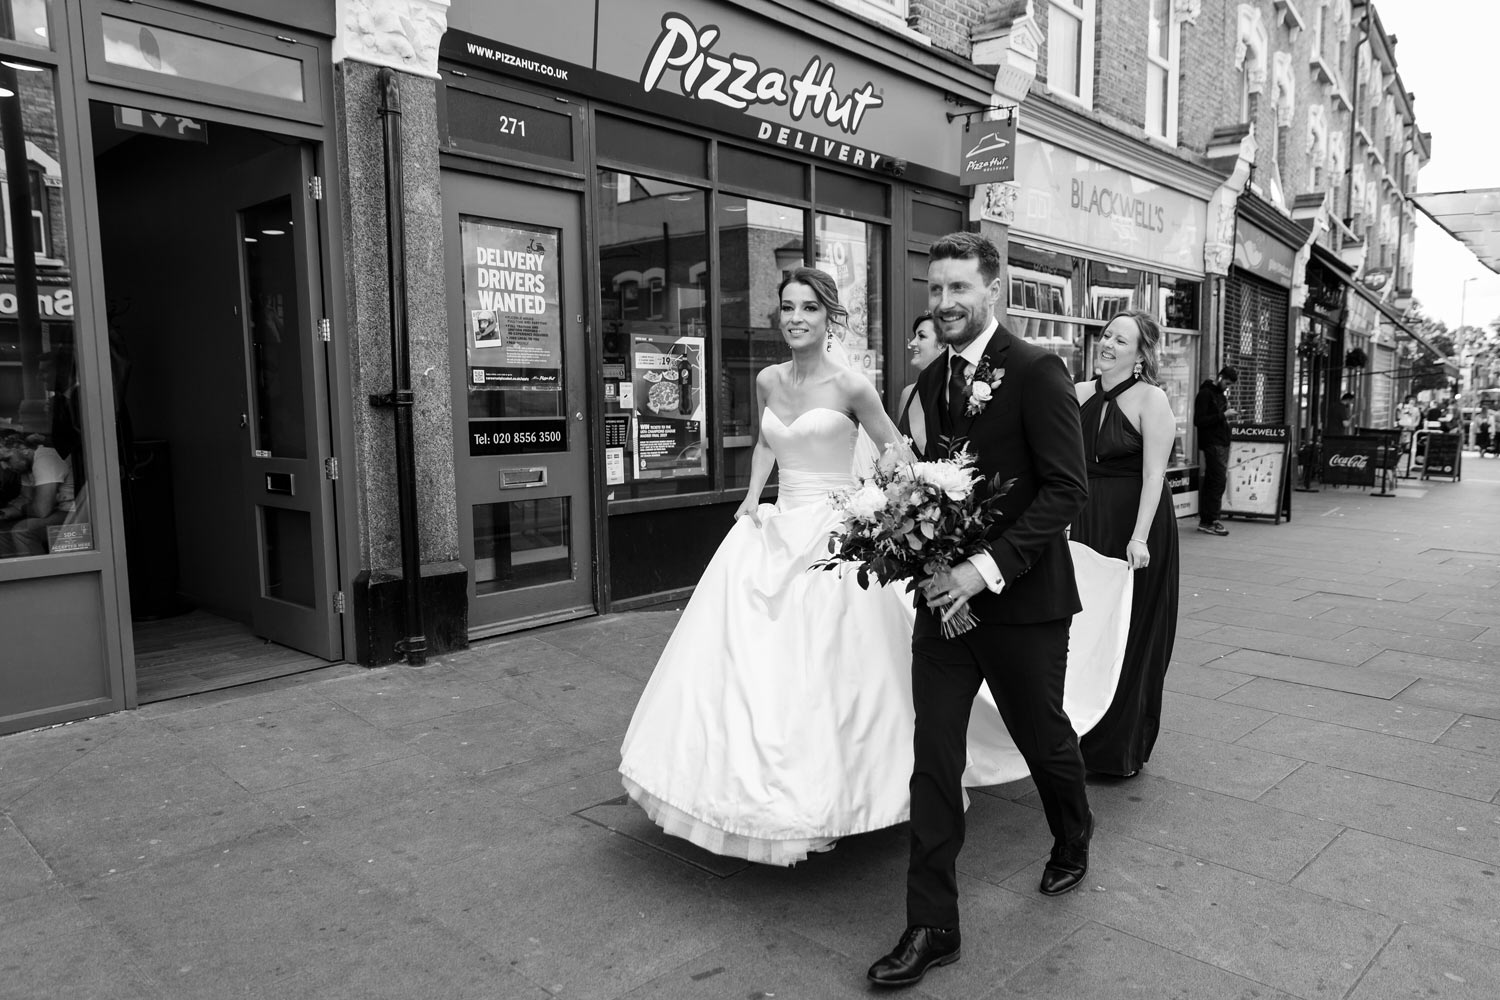 A bride and groom walk past a Pizza Hut.